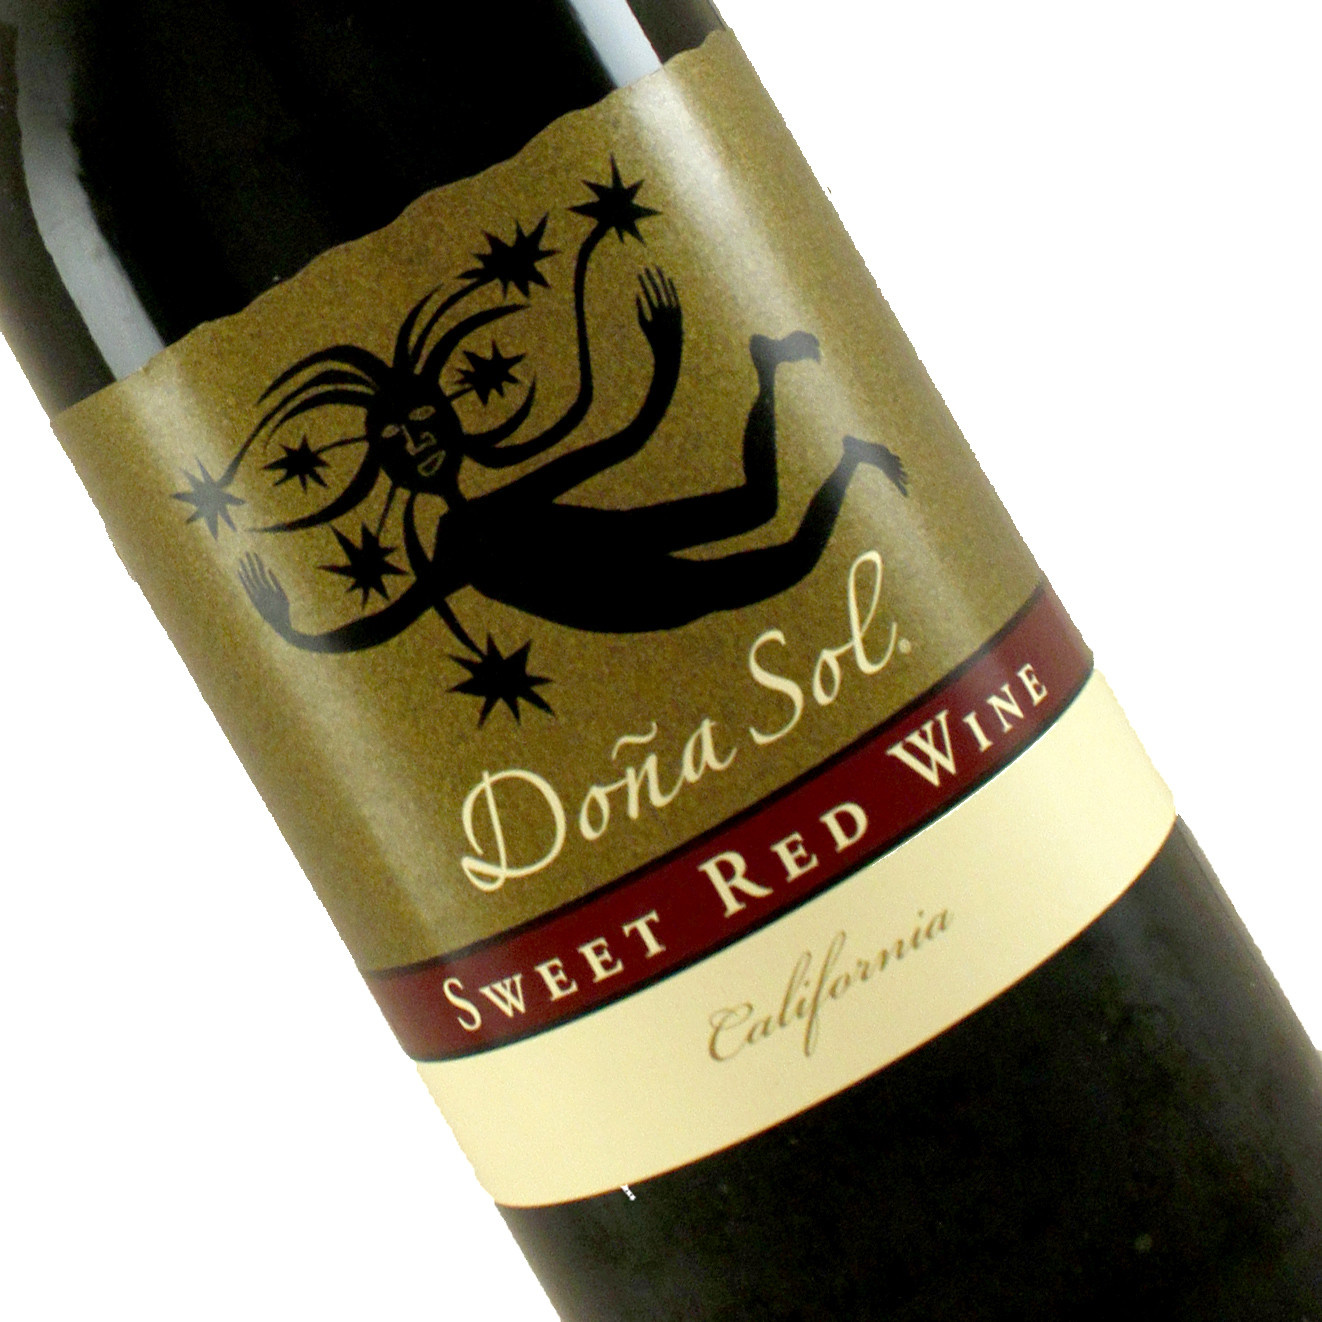 Dona Sol Sweet Red Table Wine, California